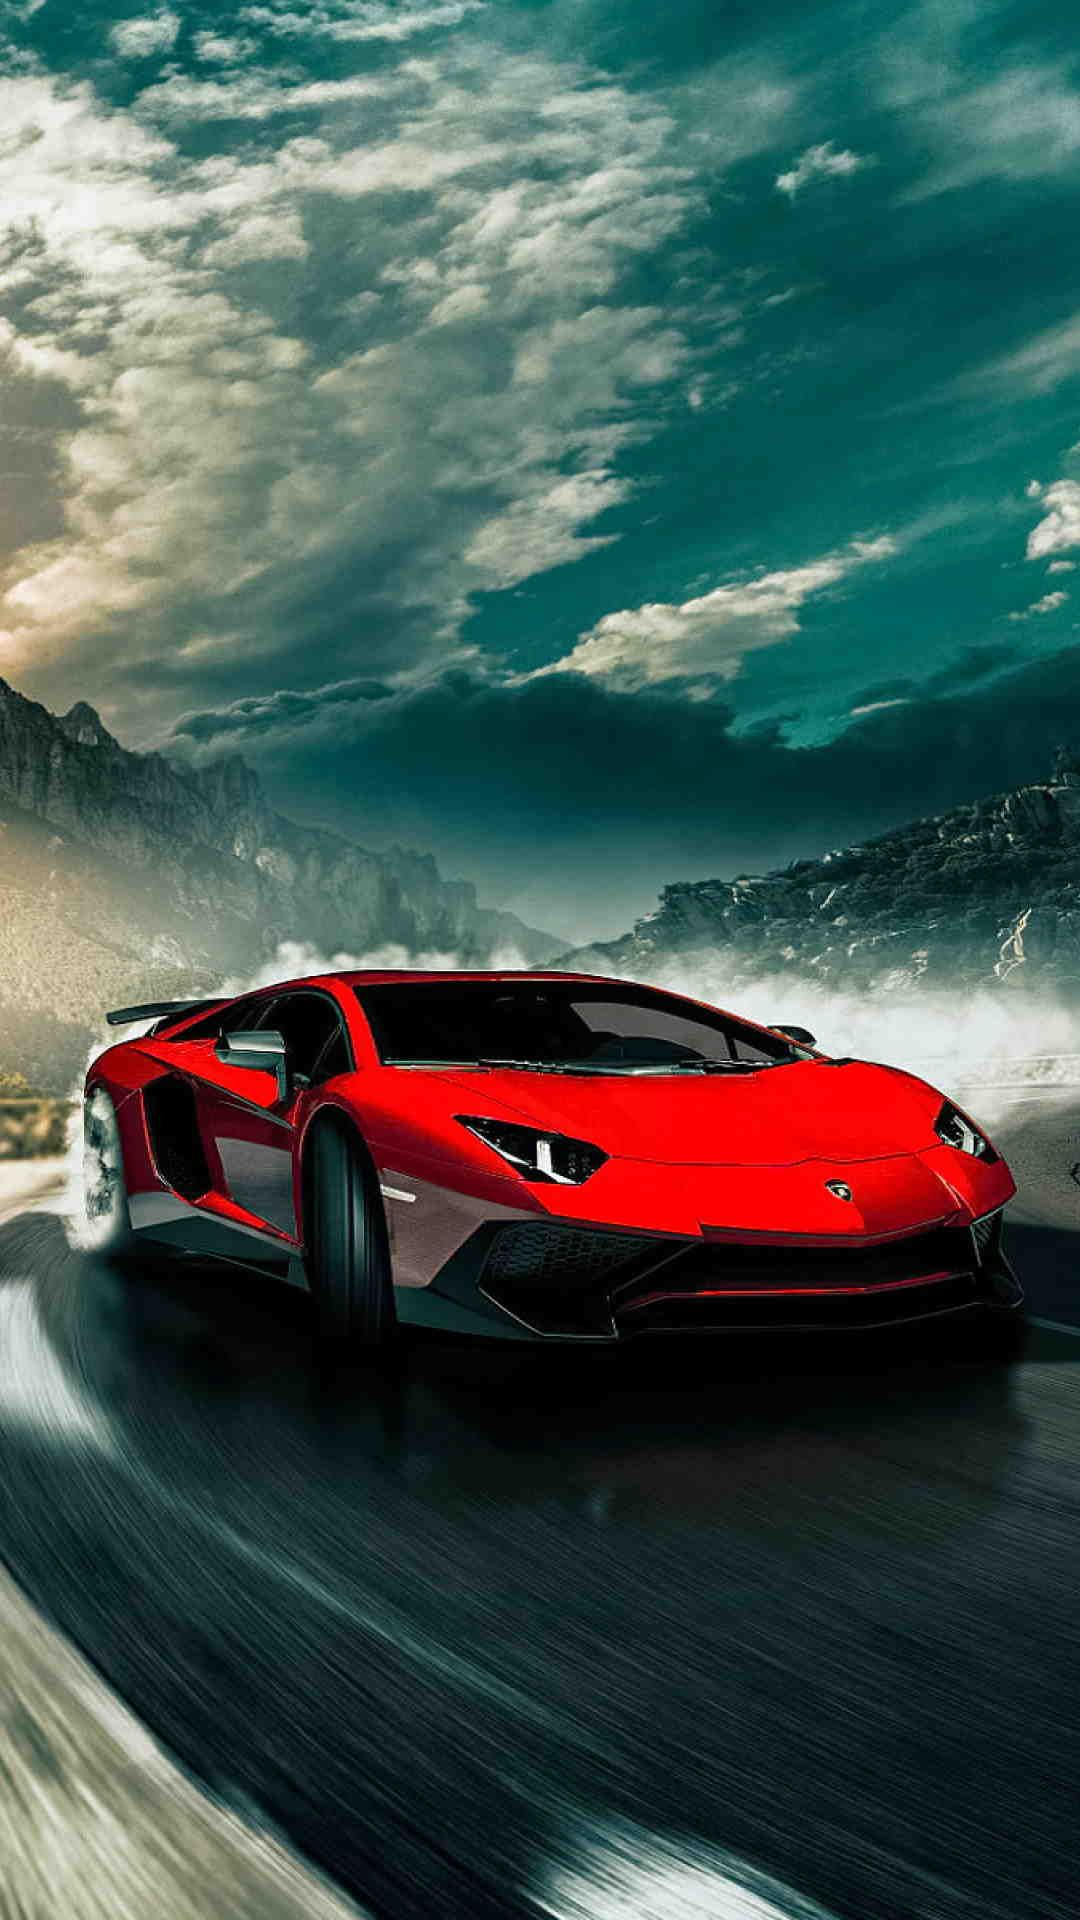 Image of 2017-Lamborghini-Aventador-SV-LP750-4-Wallpaper-for-Android-and-iPhone-6-Plus ...